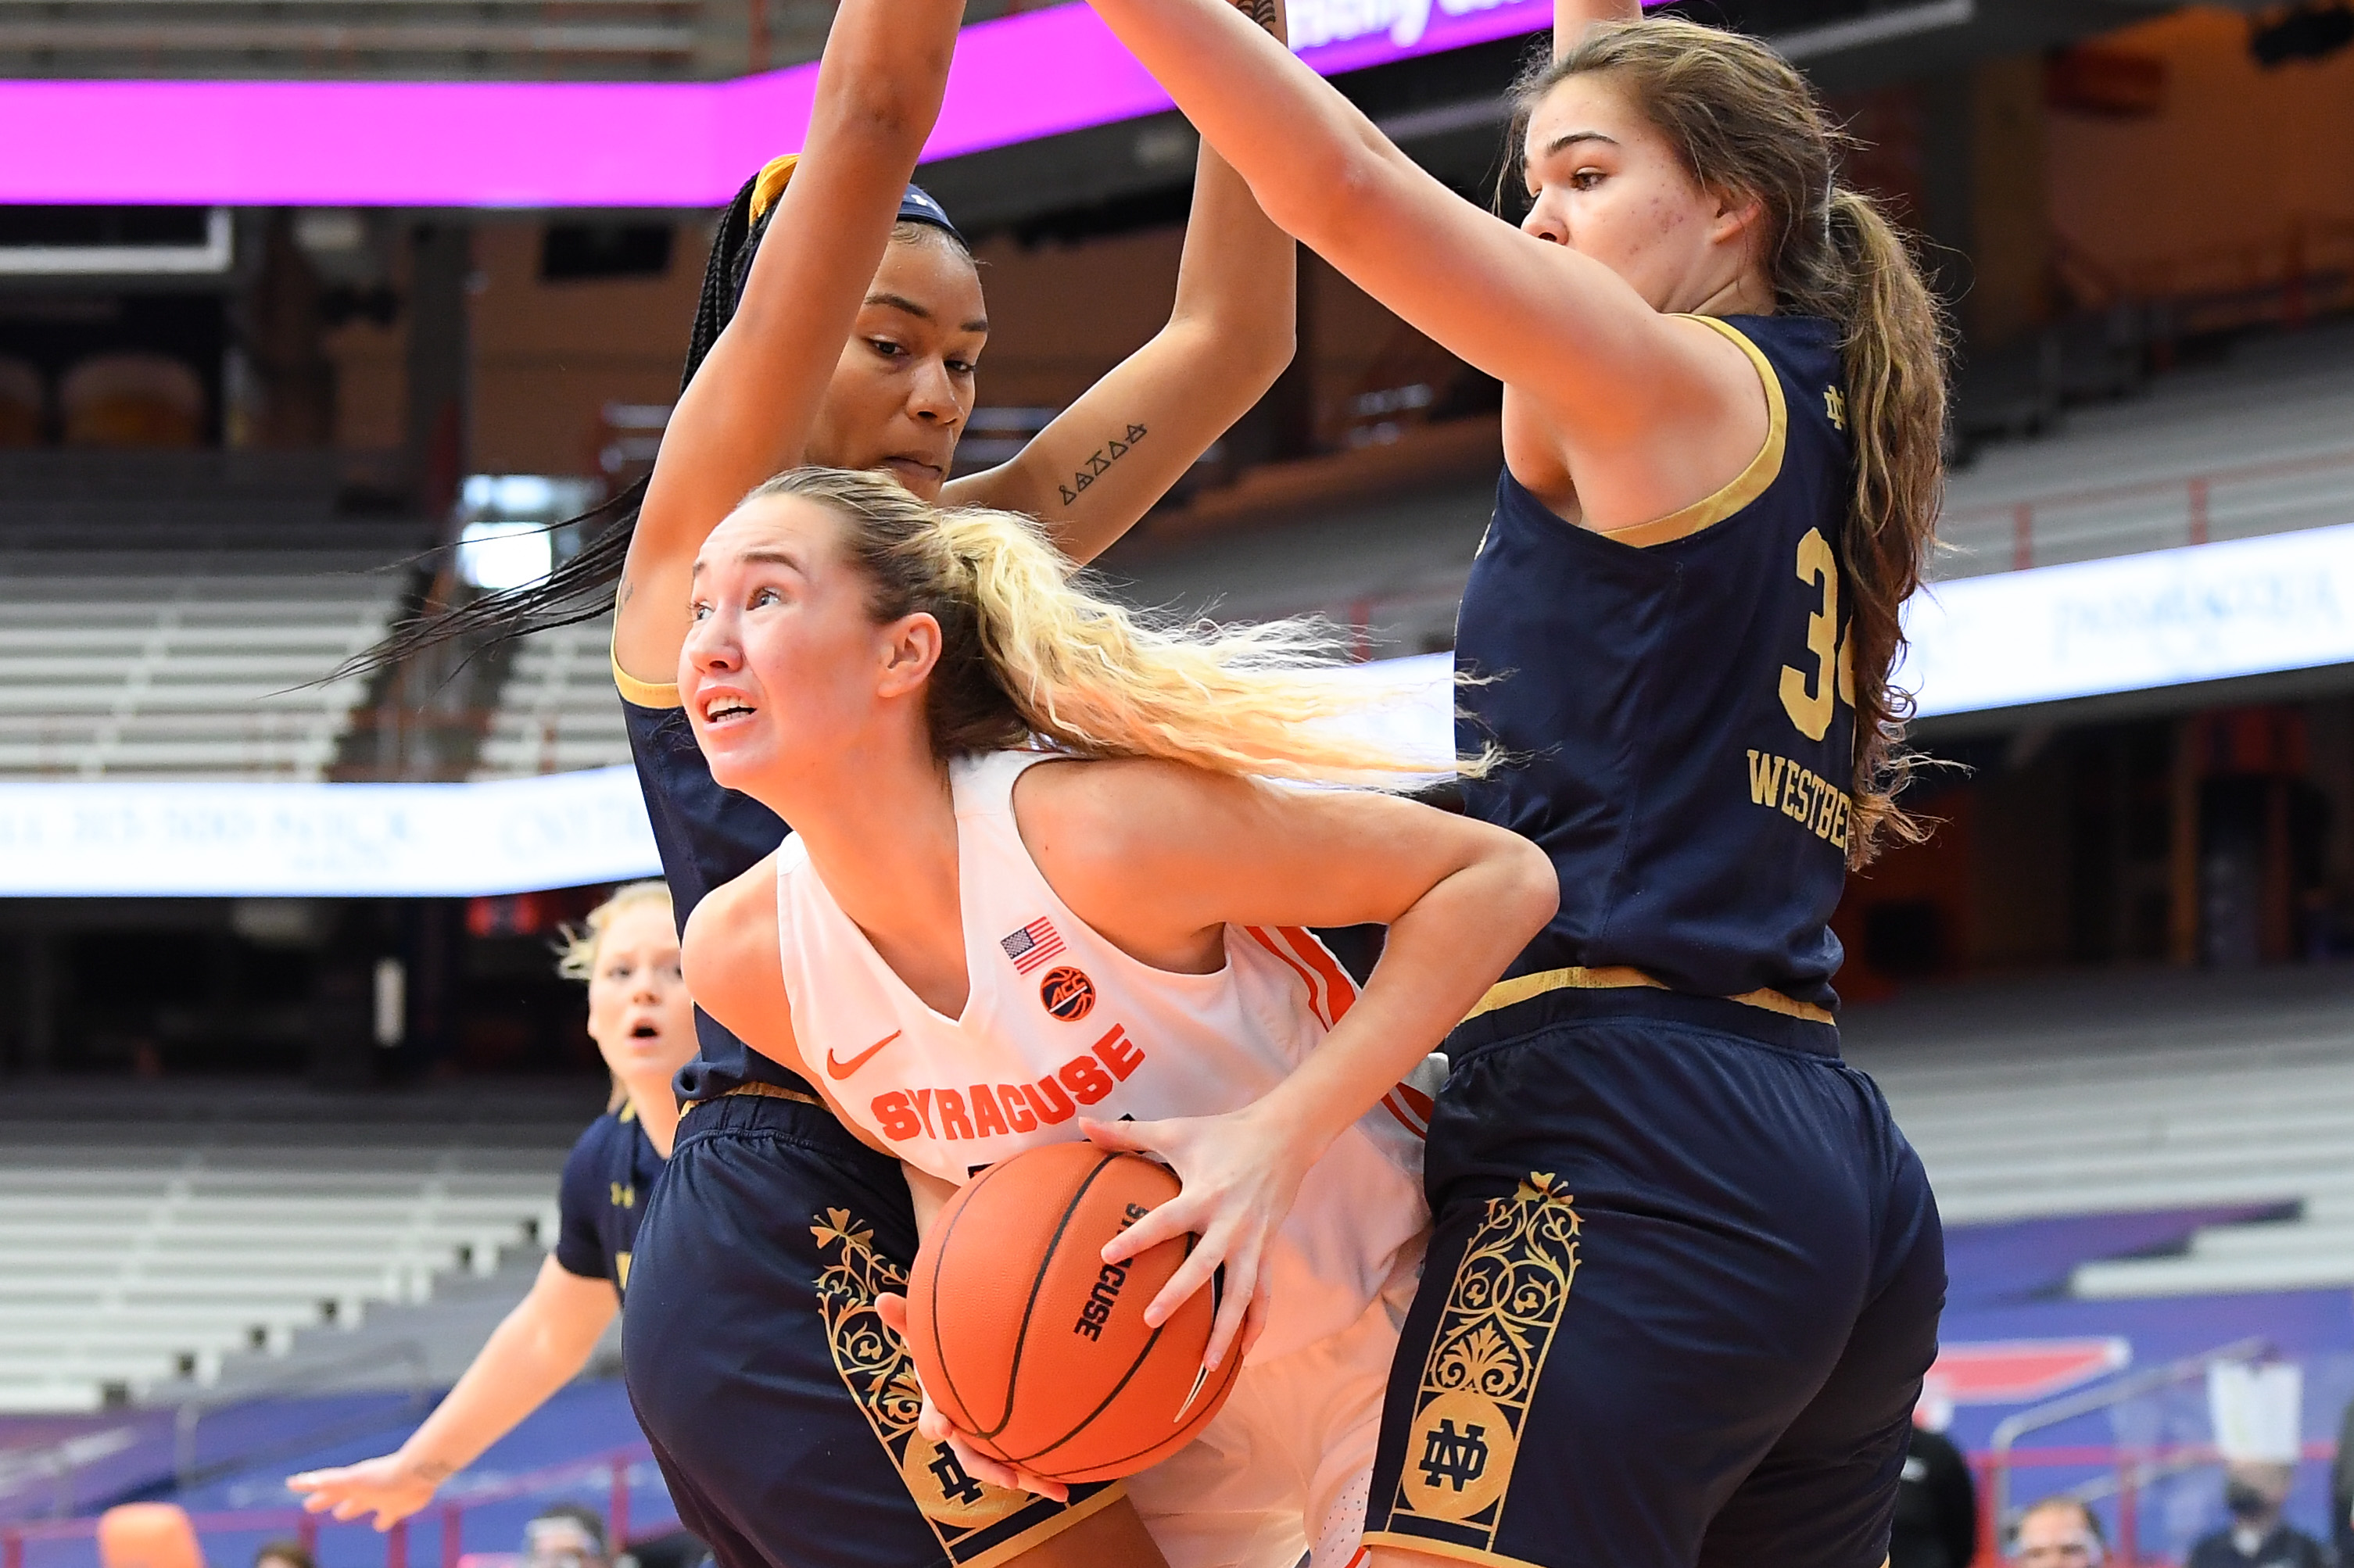 Jan 31, 2021; Syracuse, New York, USA; Syracuse Orange forward Digna Strautmane (45) controls the ball between Notre Dame Fighting Irish center Mikayla Vaughn (left) and forward Madelyn Westbeld (34) during the first half at the Carrier Dome. Mandatory Credit: Rich Barnes-USA TODAY Sports